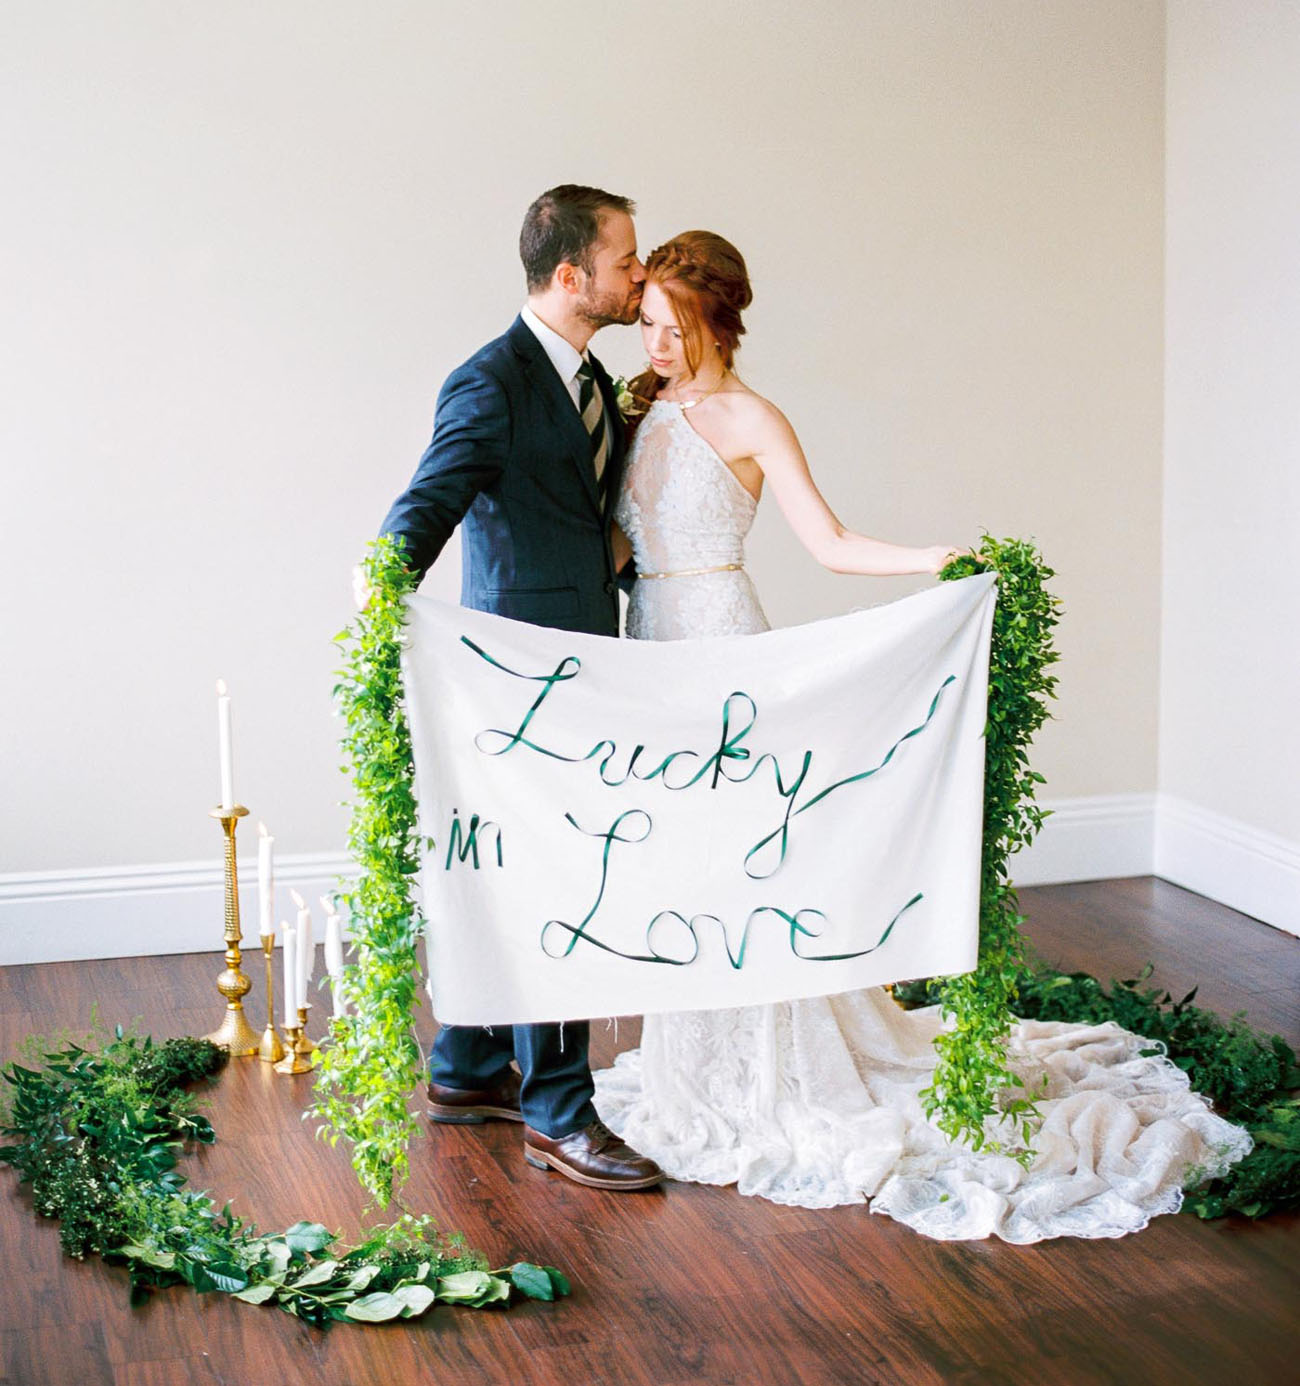 Pantone's Greenery Inspired this Glamorous Styled Shoot